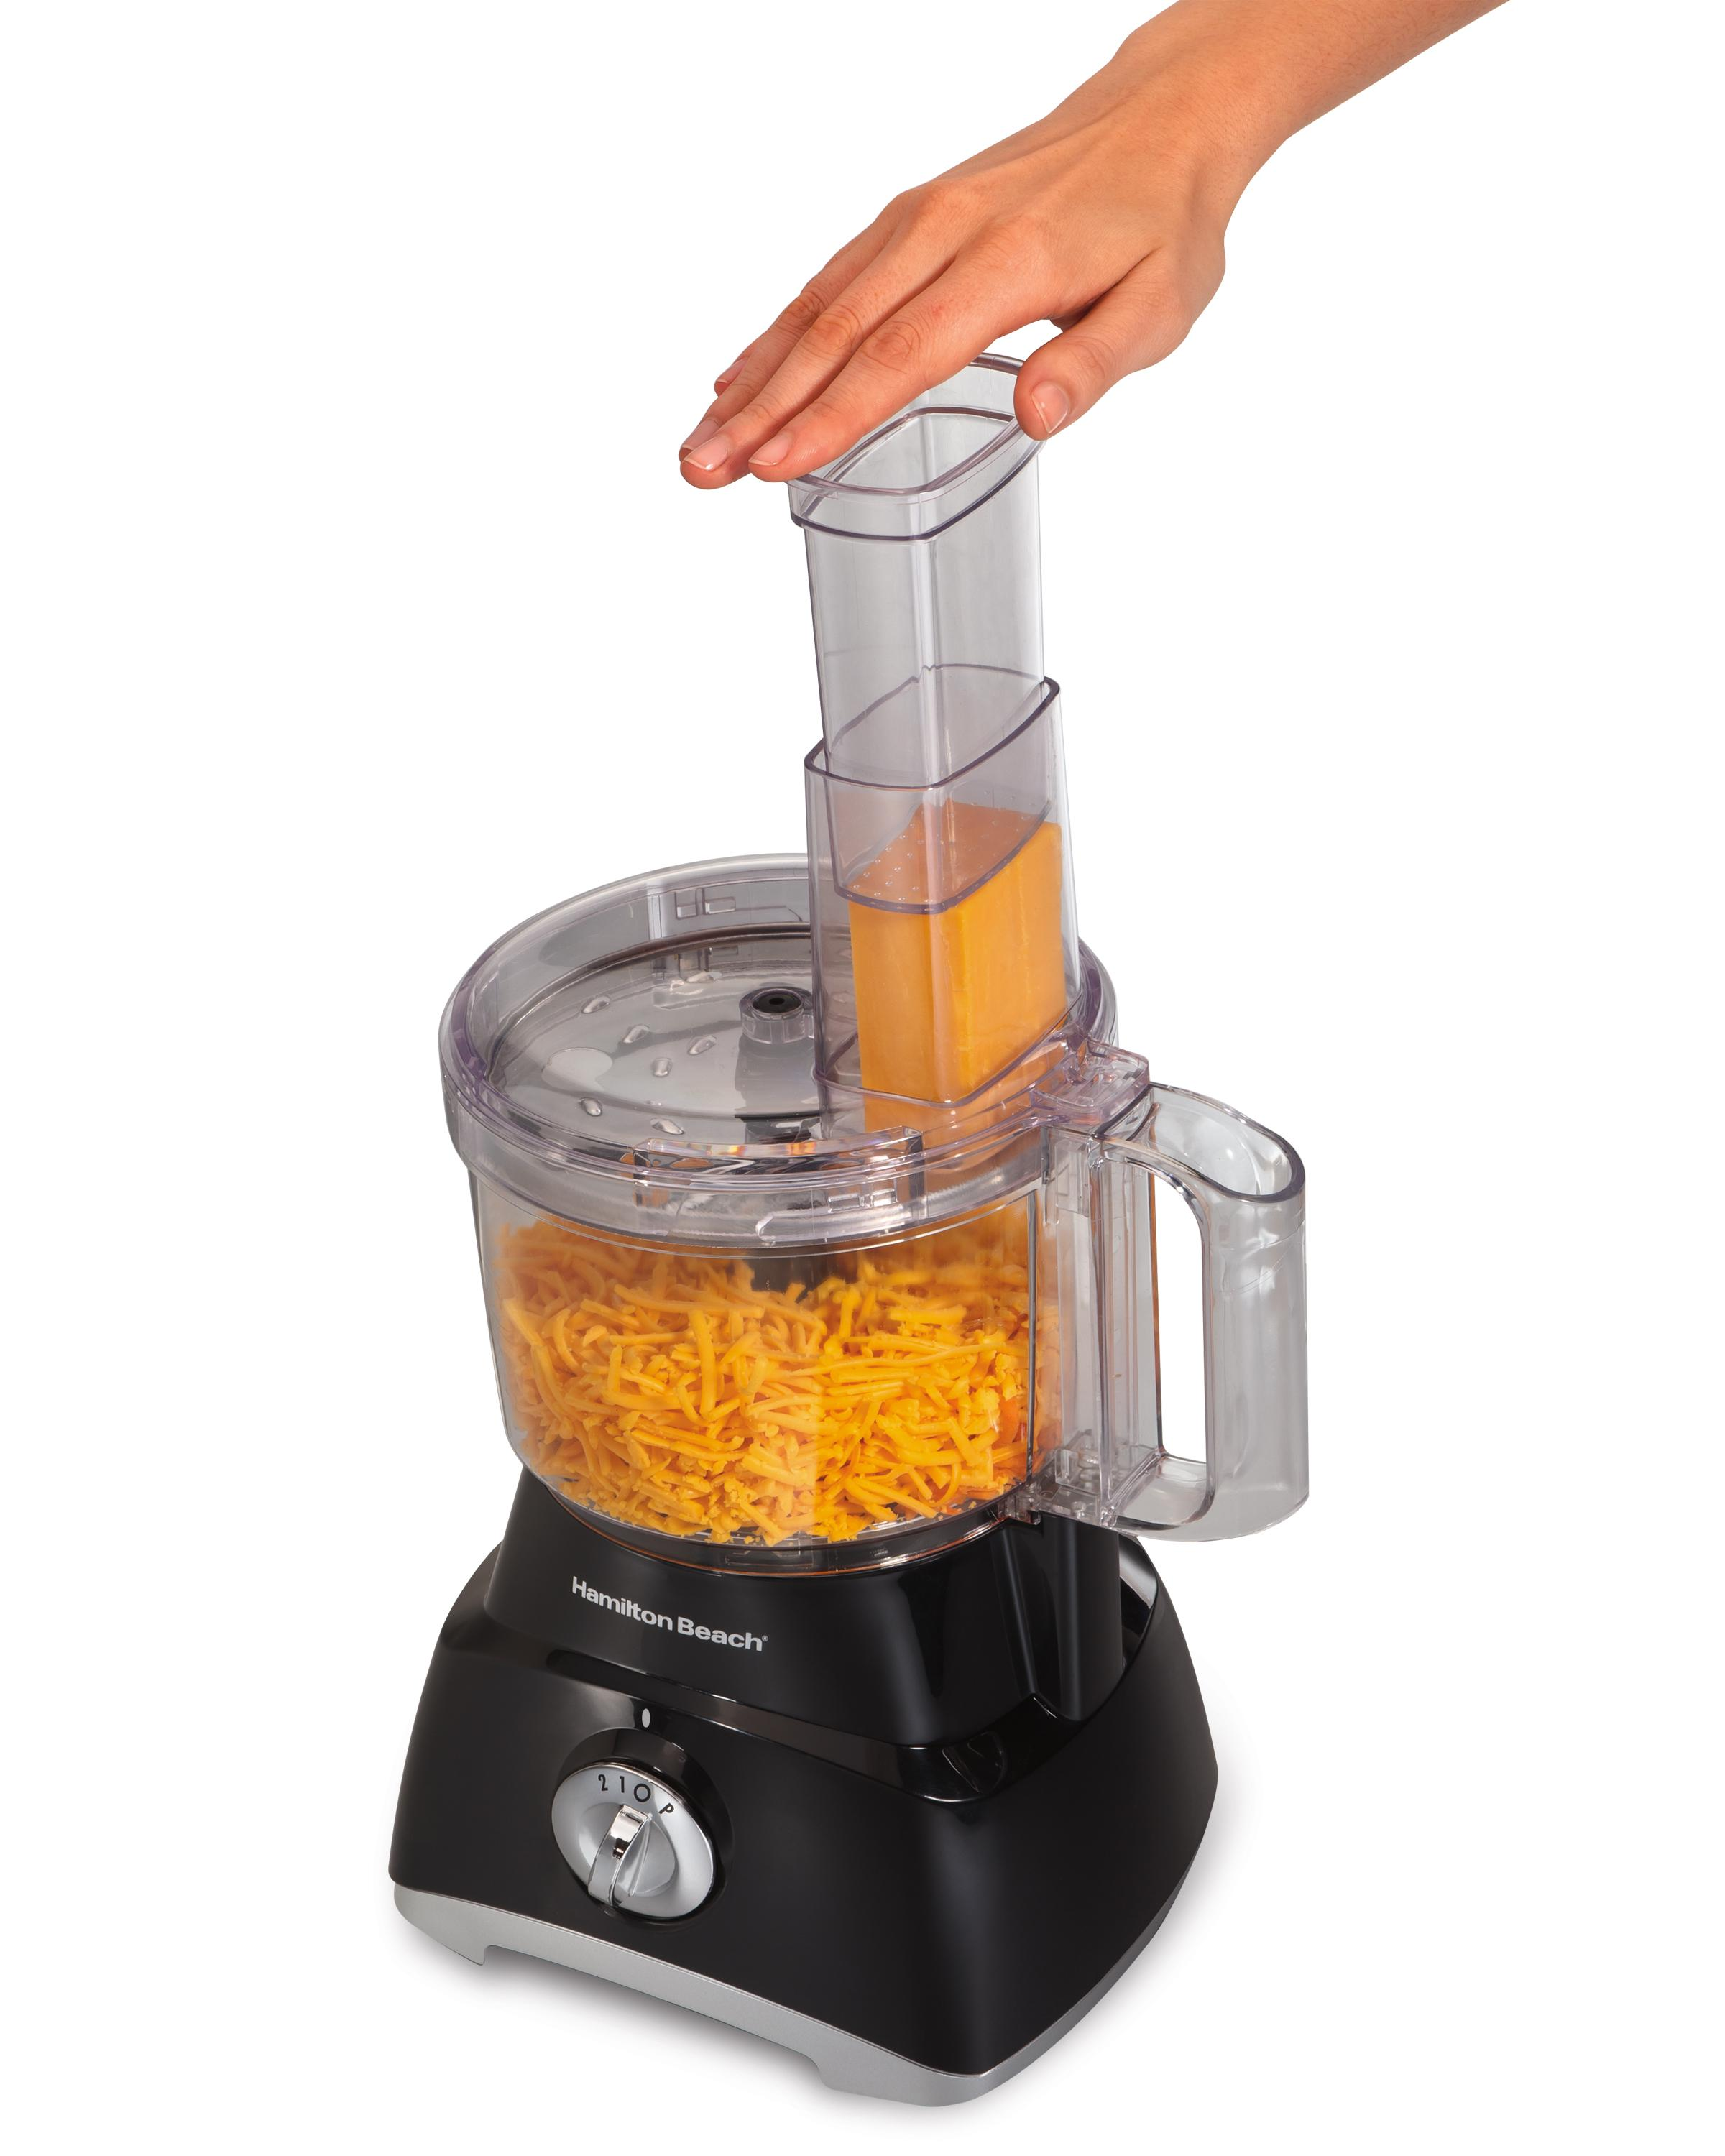 Cooking With Breville Food Processor